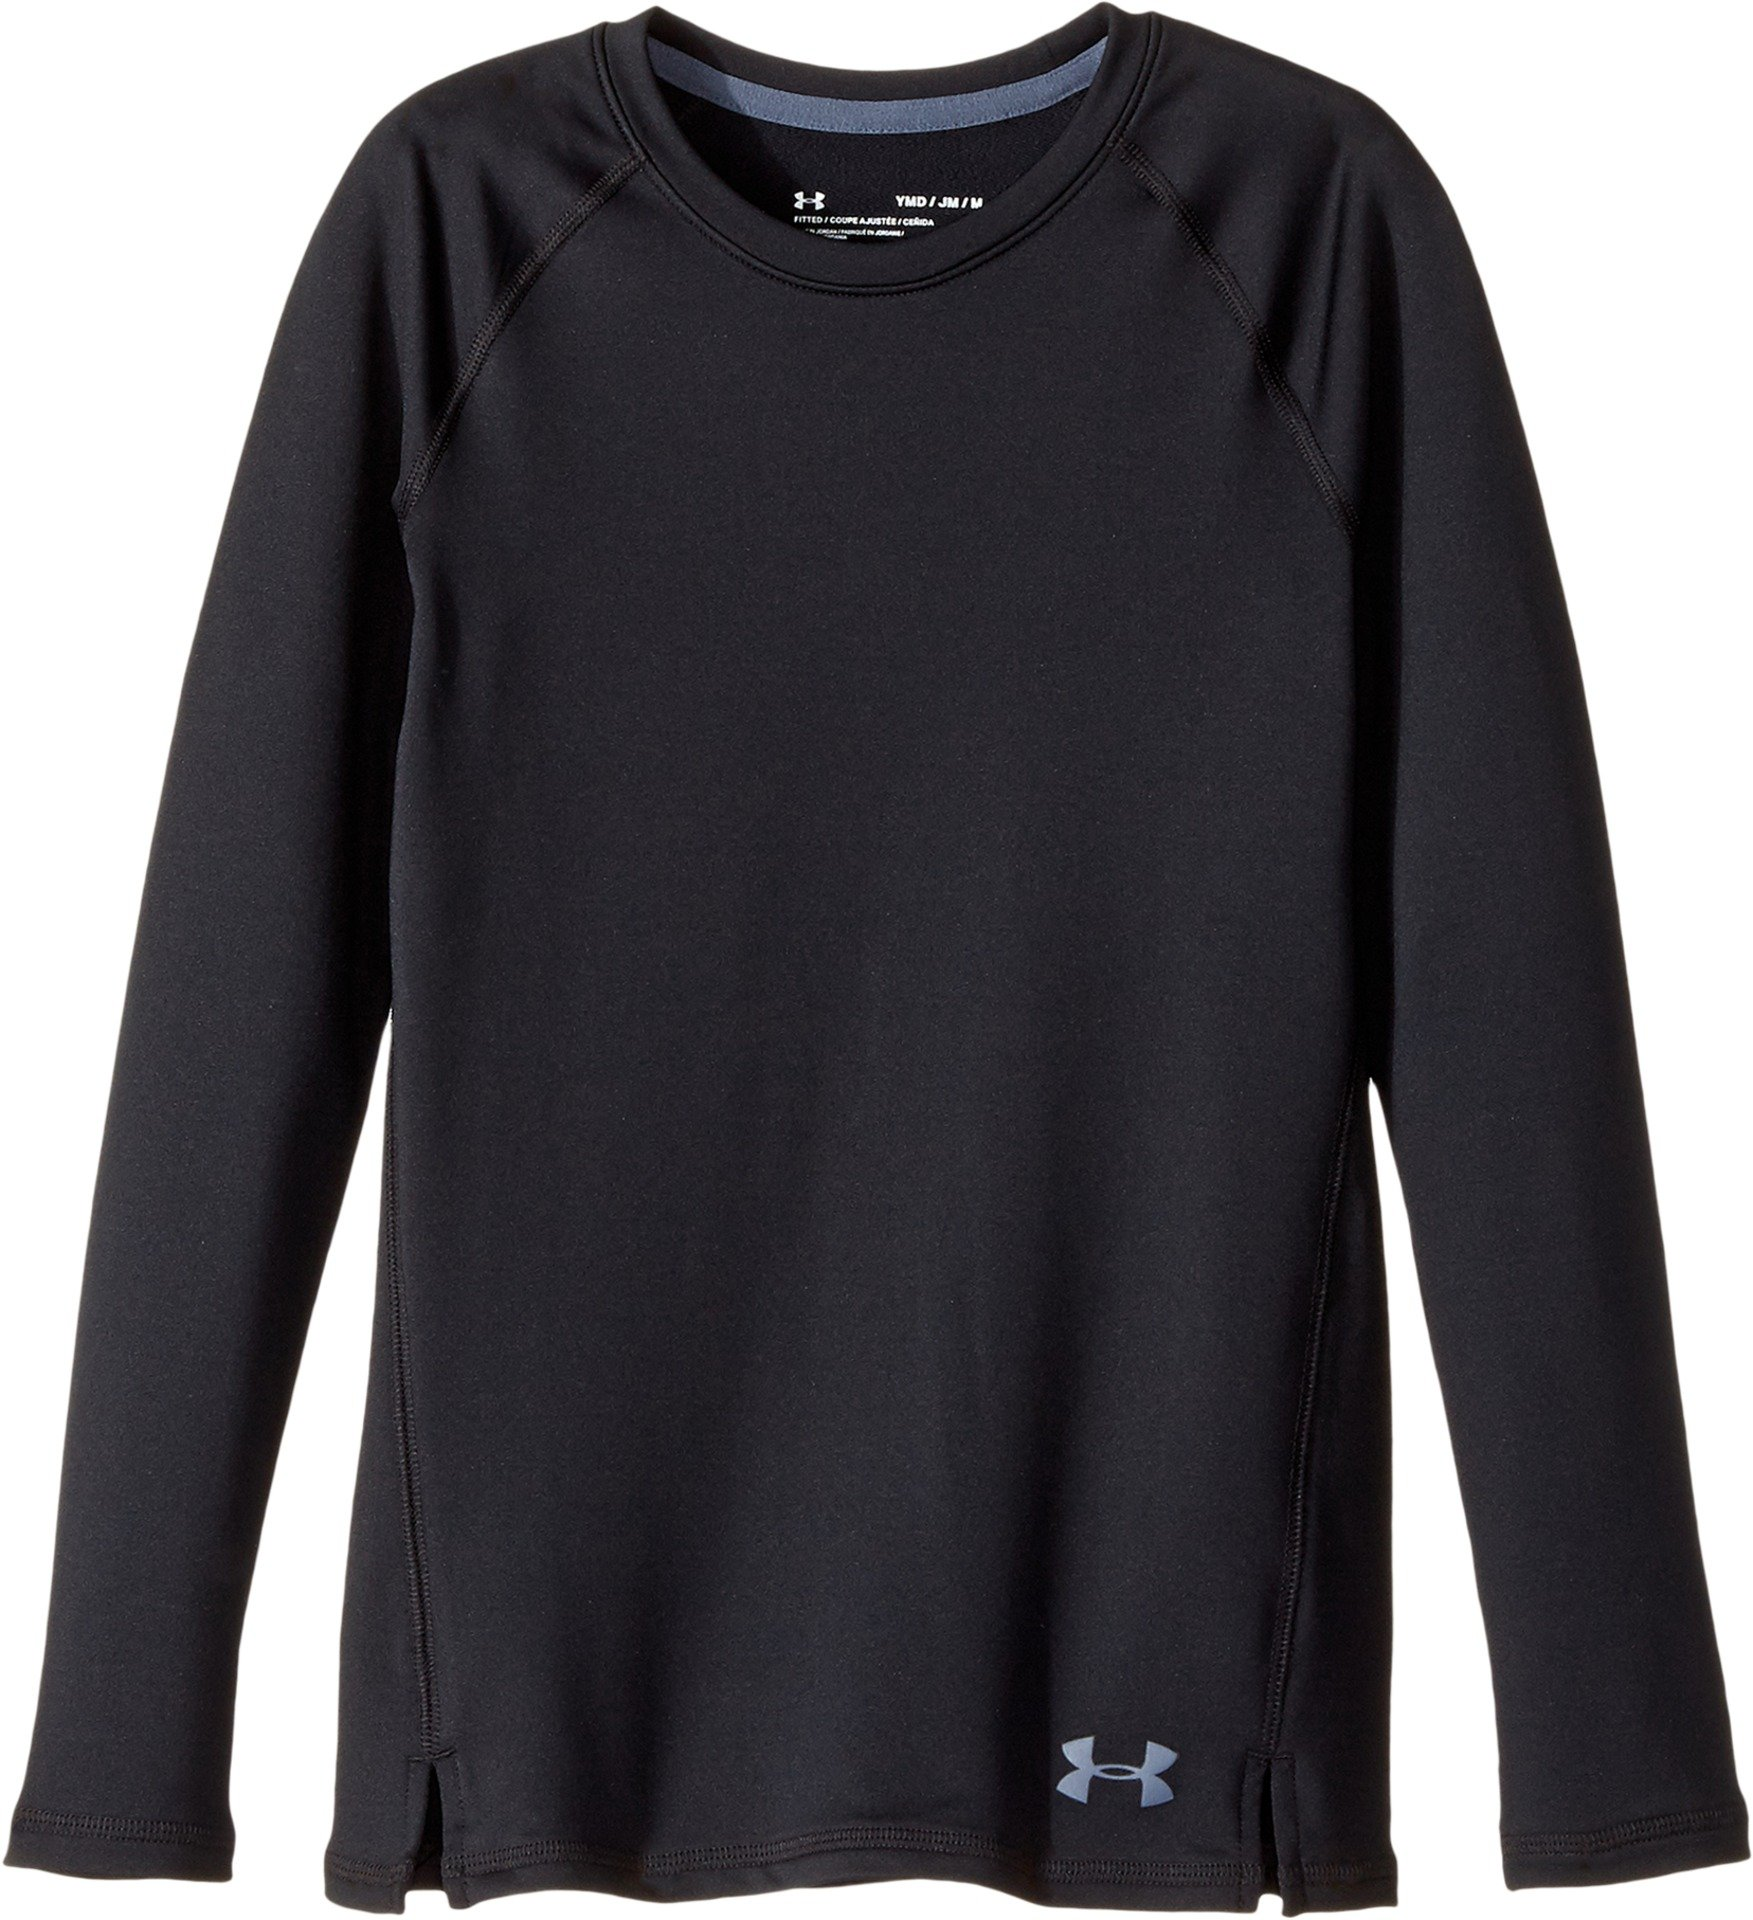 Under Armour Girls' ColdGear Crew Neck,Black (001)/Apollo Gray, Youth Small